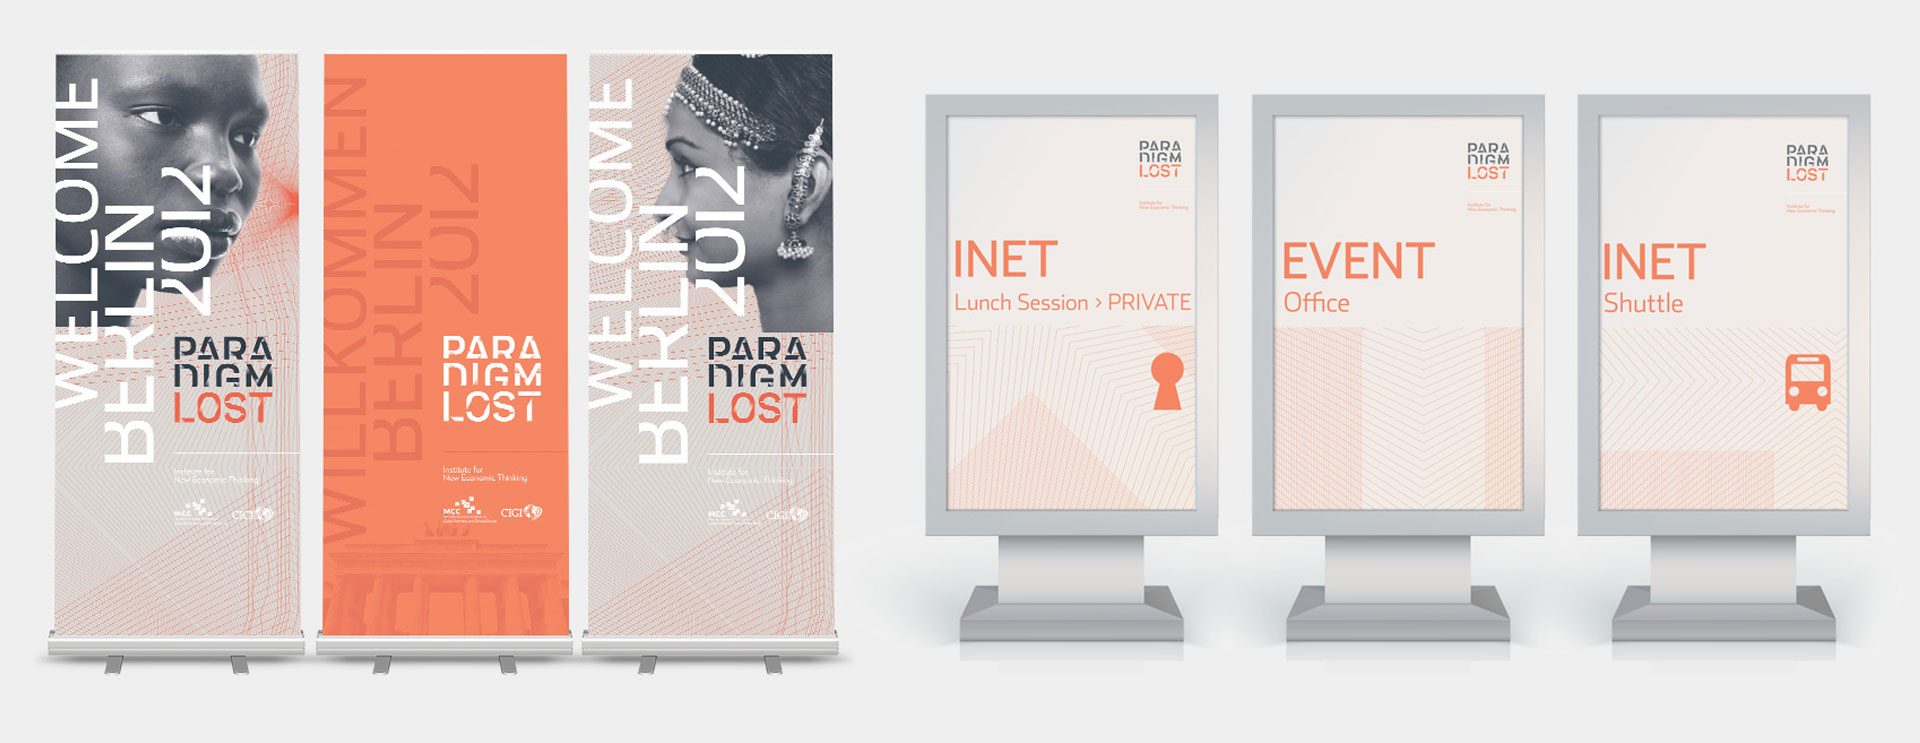 Paradigm Lost I.N.E.T. Event marketing posters